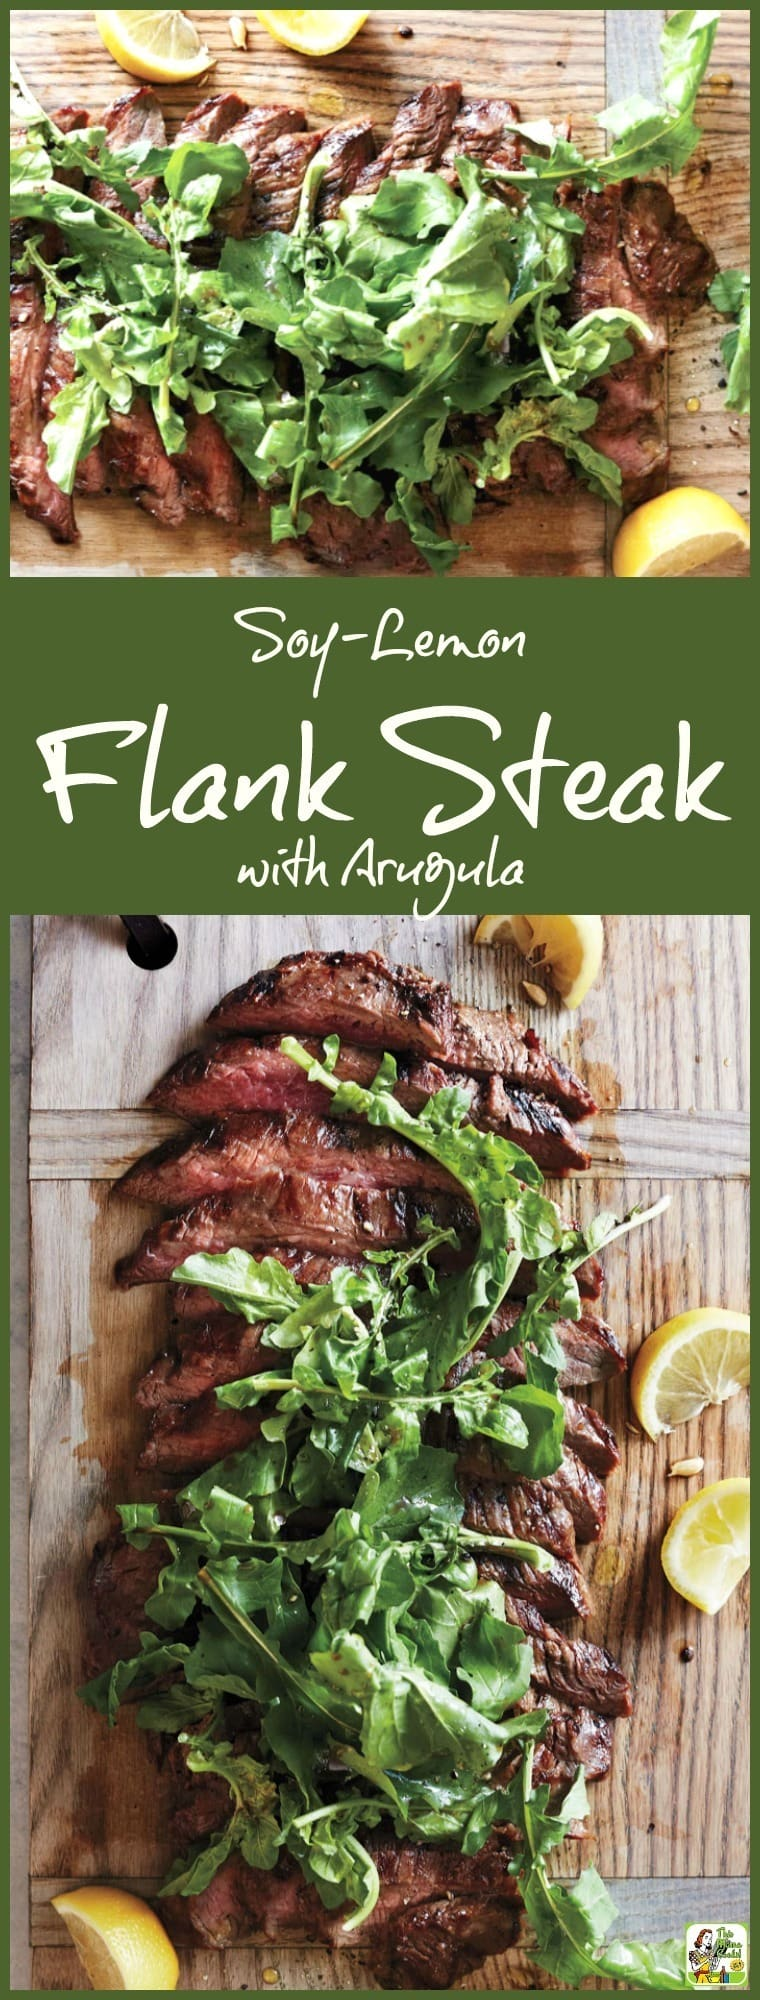 Love to grill? Then you'll enjoy making this easy Soy-Lemon Flank Steak with Arugula recipe. Super simple preparation. Easy enough to make in the morning before work or when you get home before dinner. Use as a weeknight dinner recipe or triple for the perfect backyard barbecue grilling recipe!